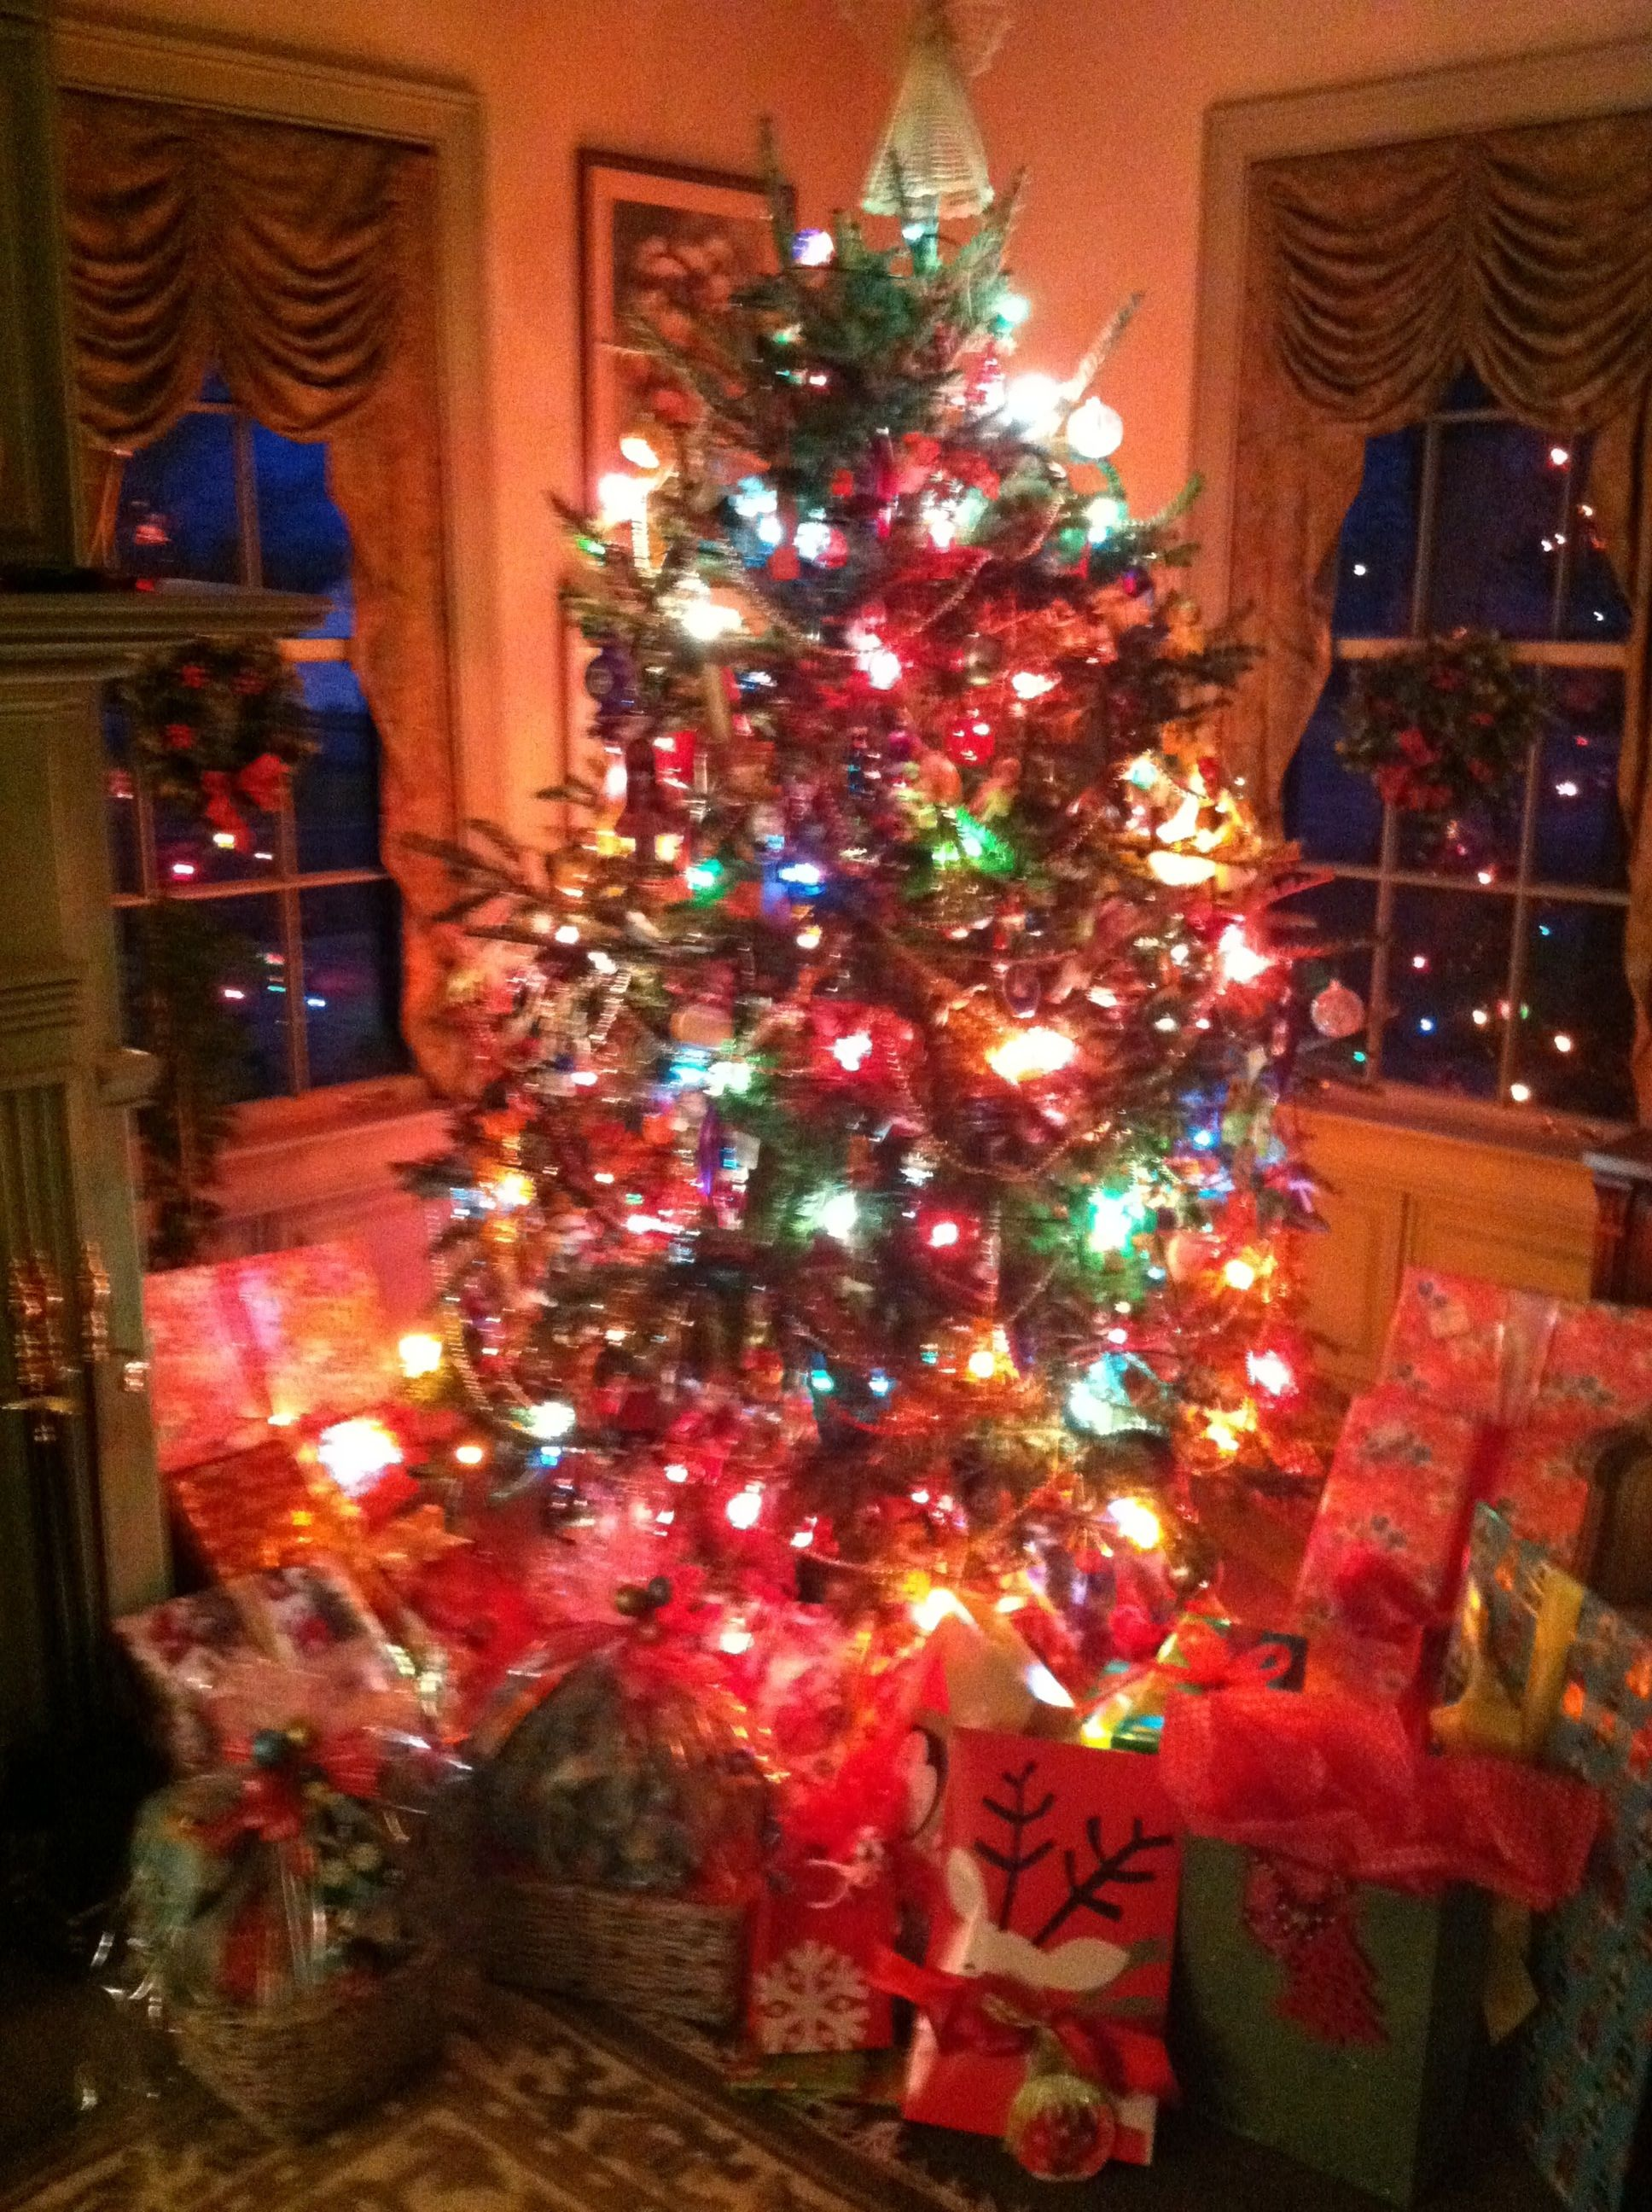 Our traditional tree at my parents' homeChristmas Eve